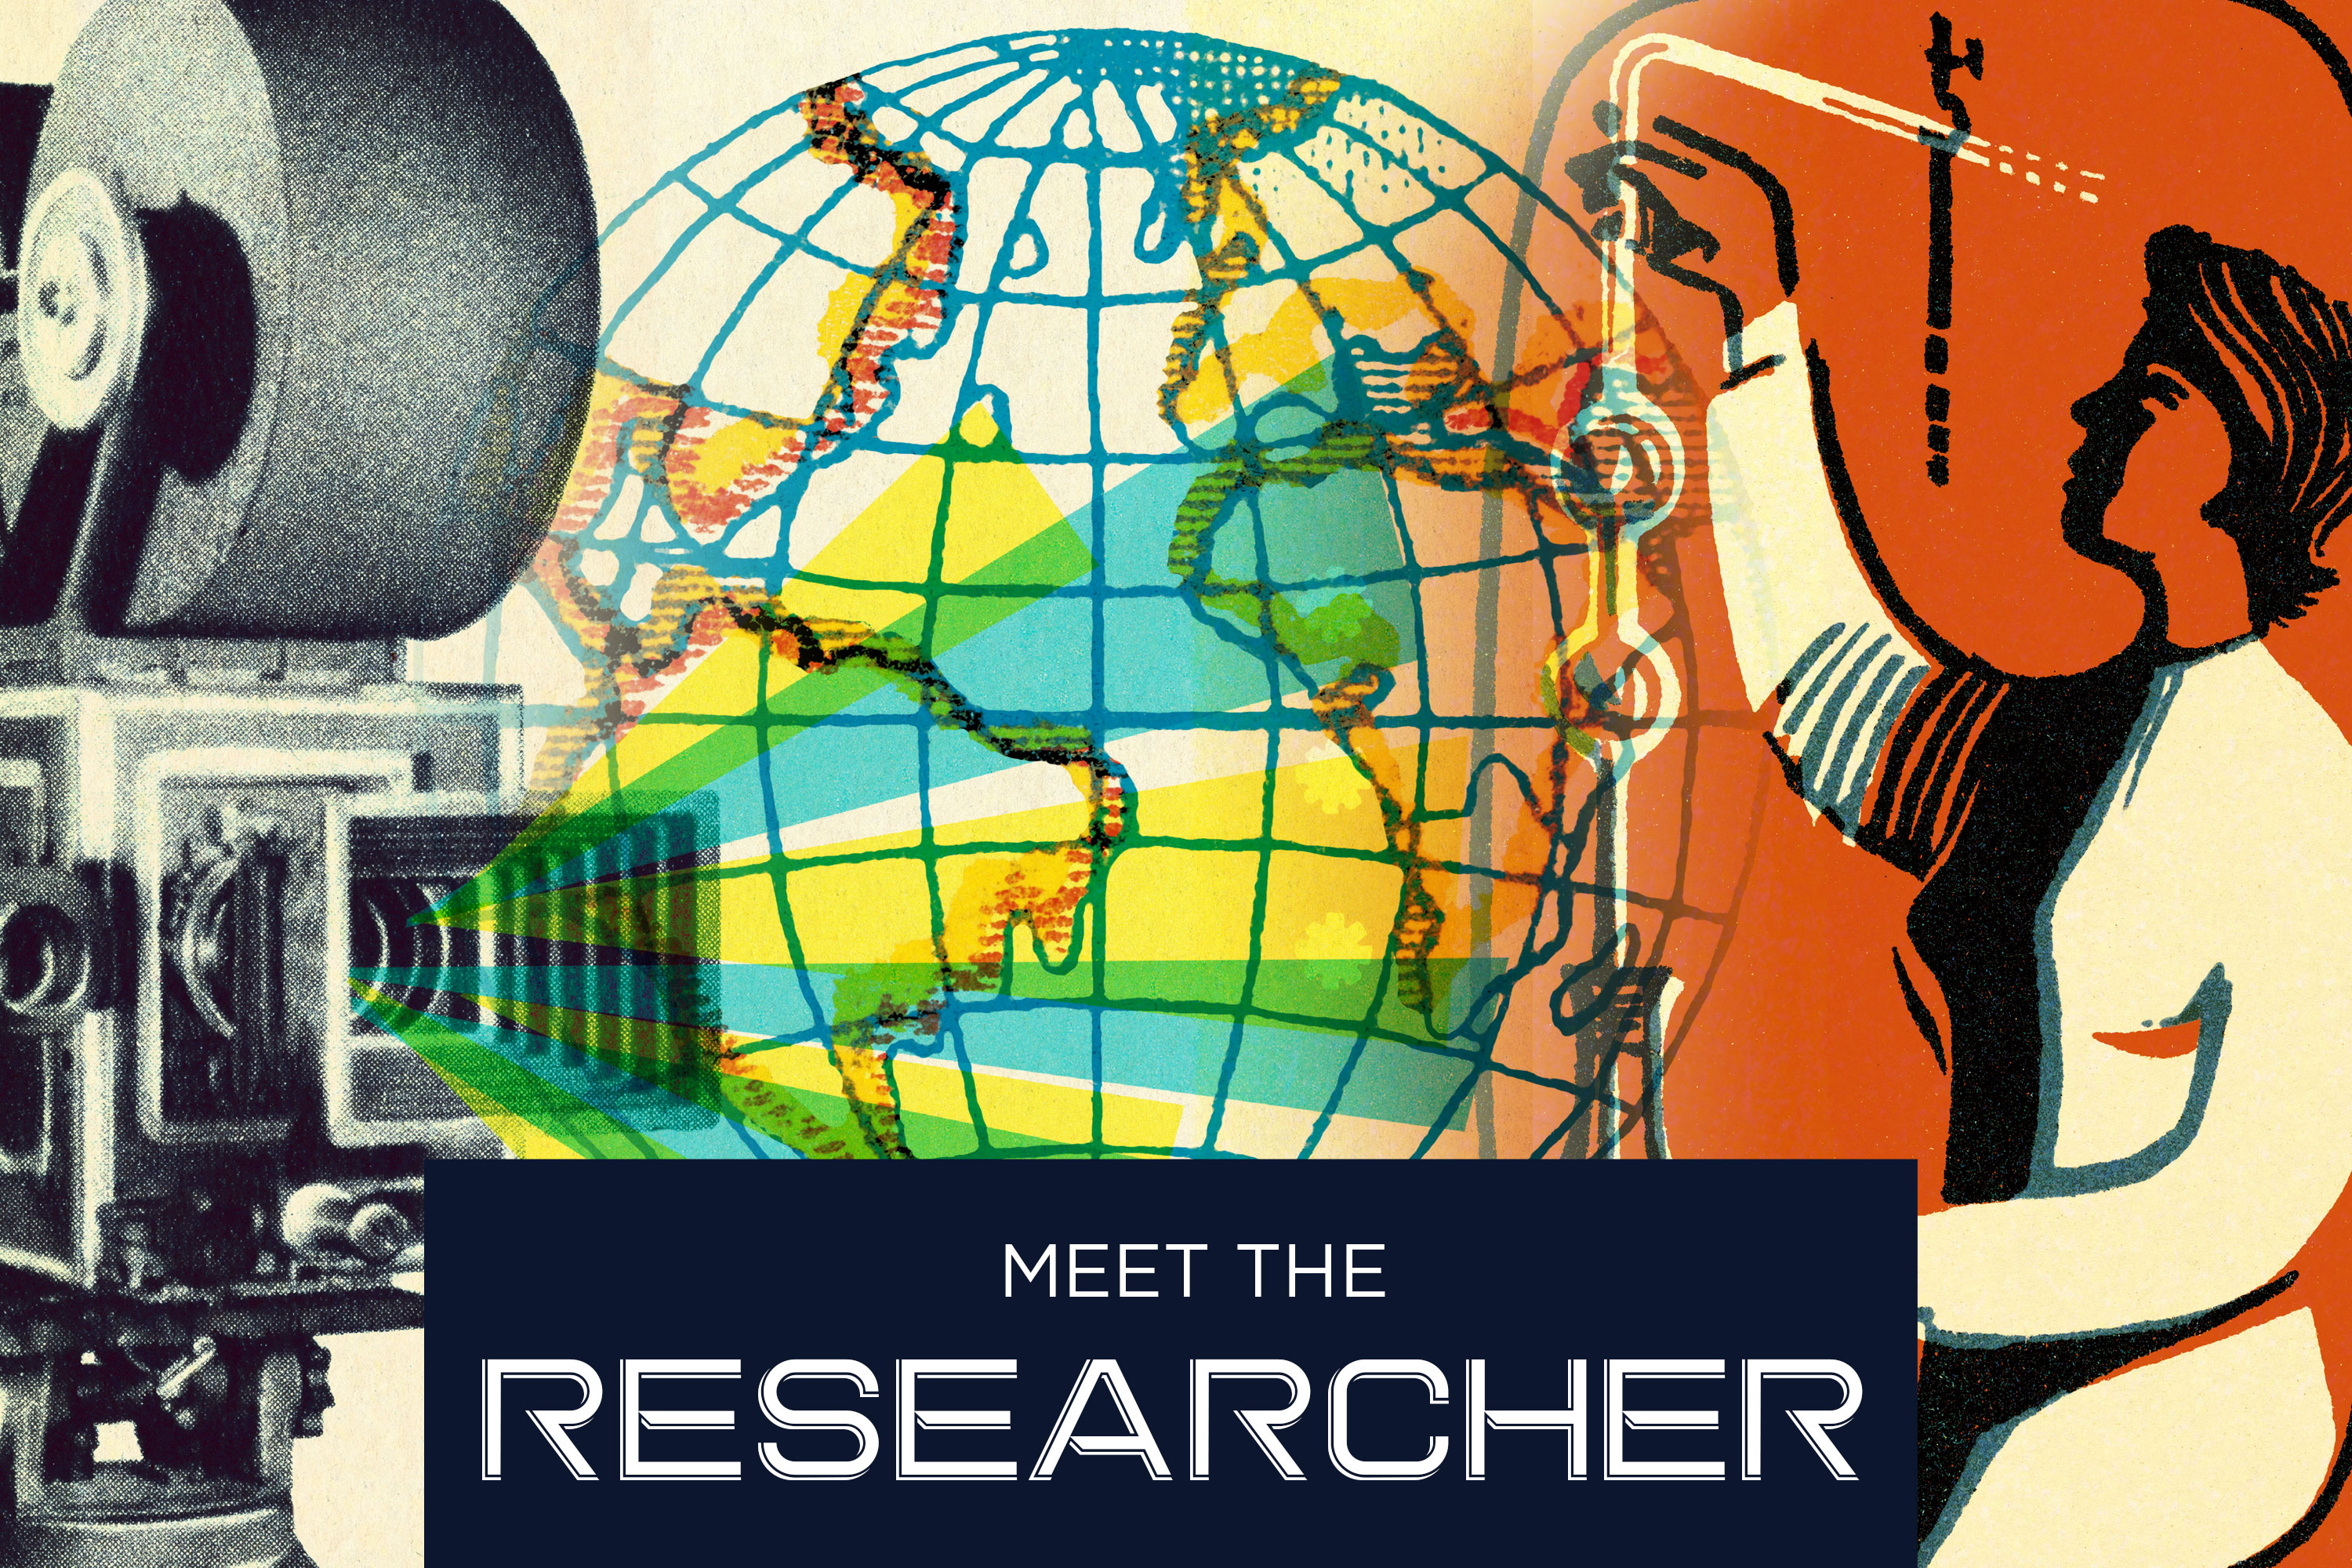 Meet the researcher graphic